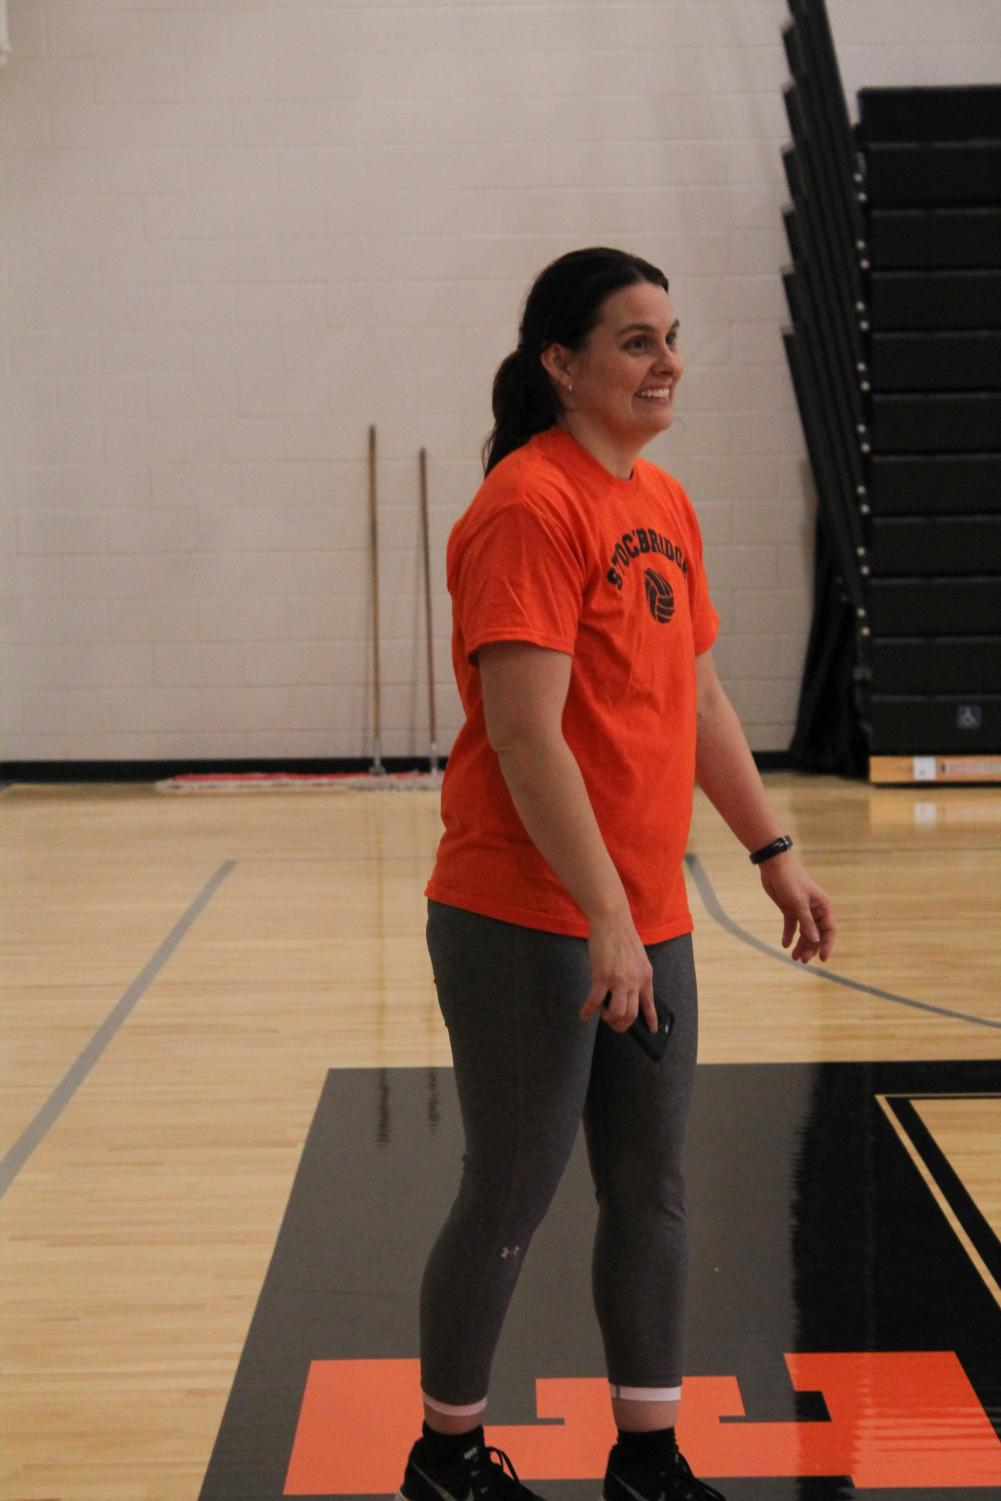 Showing her sophomore girls how to properly serve the ball, coach Villegas laughs as she watches the players learn from their unsuccessful attempts at serving the ball to their partners.